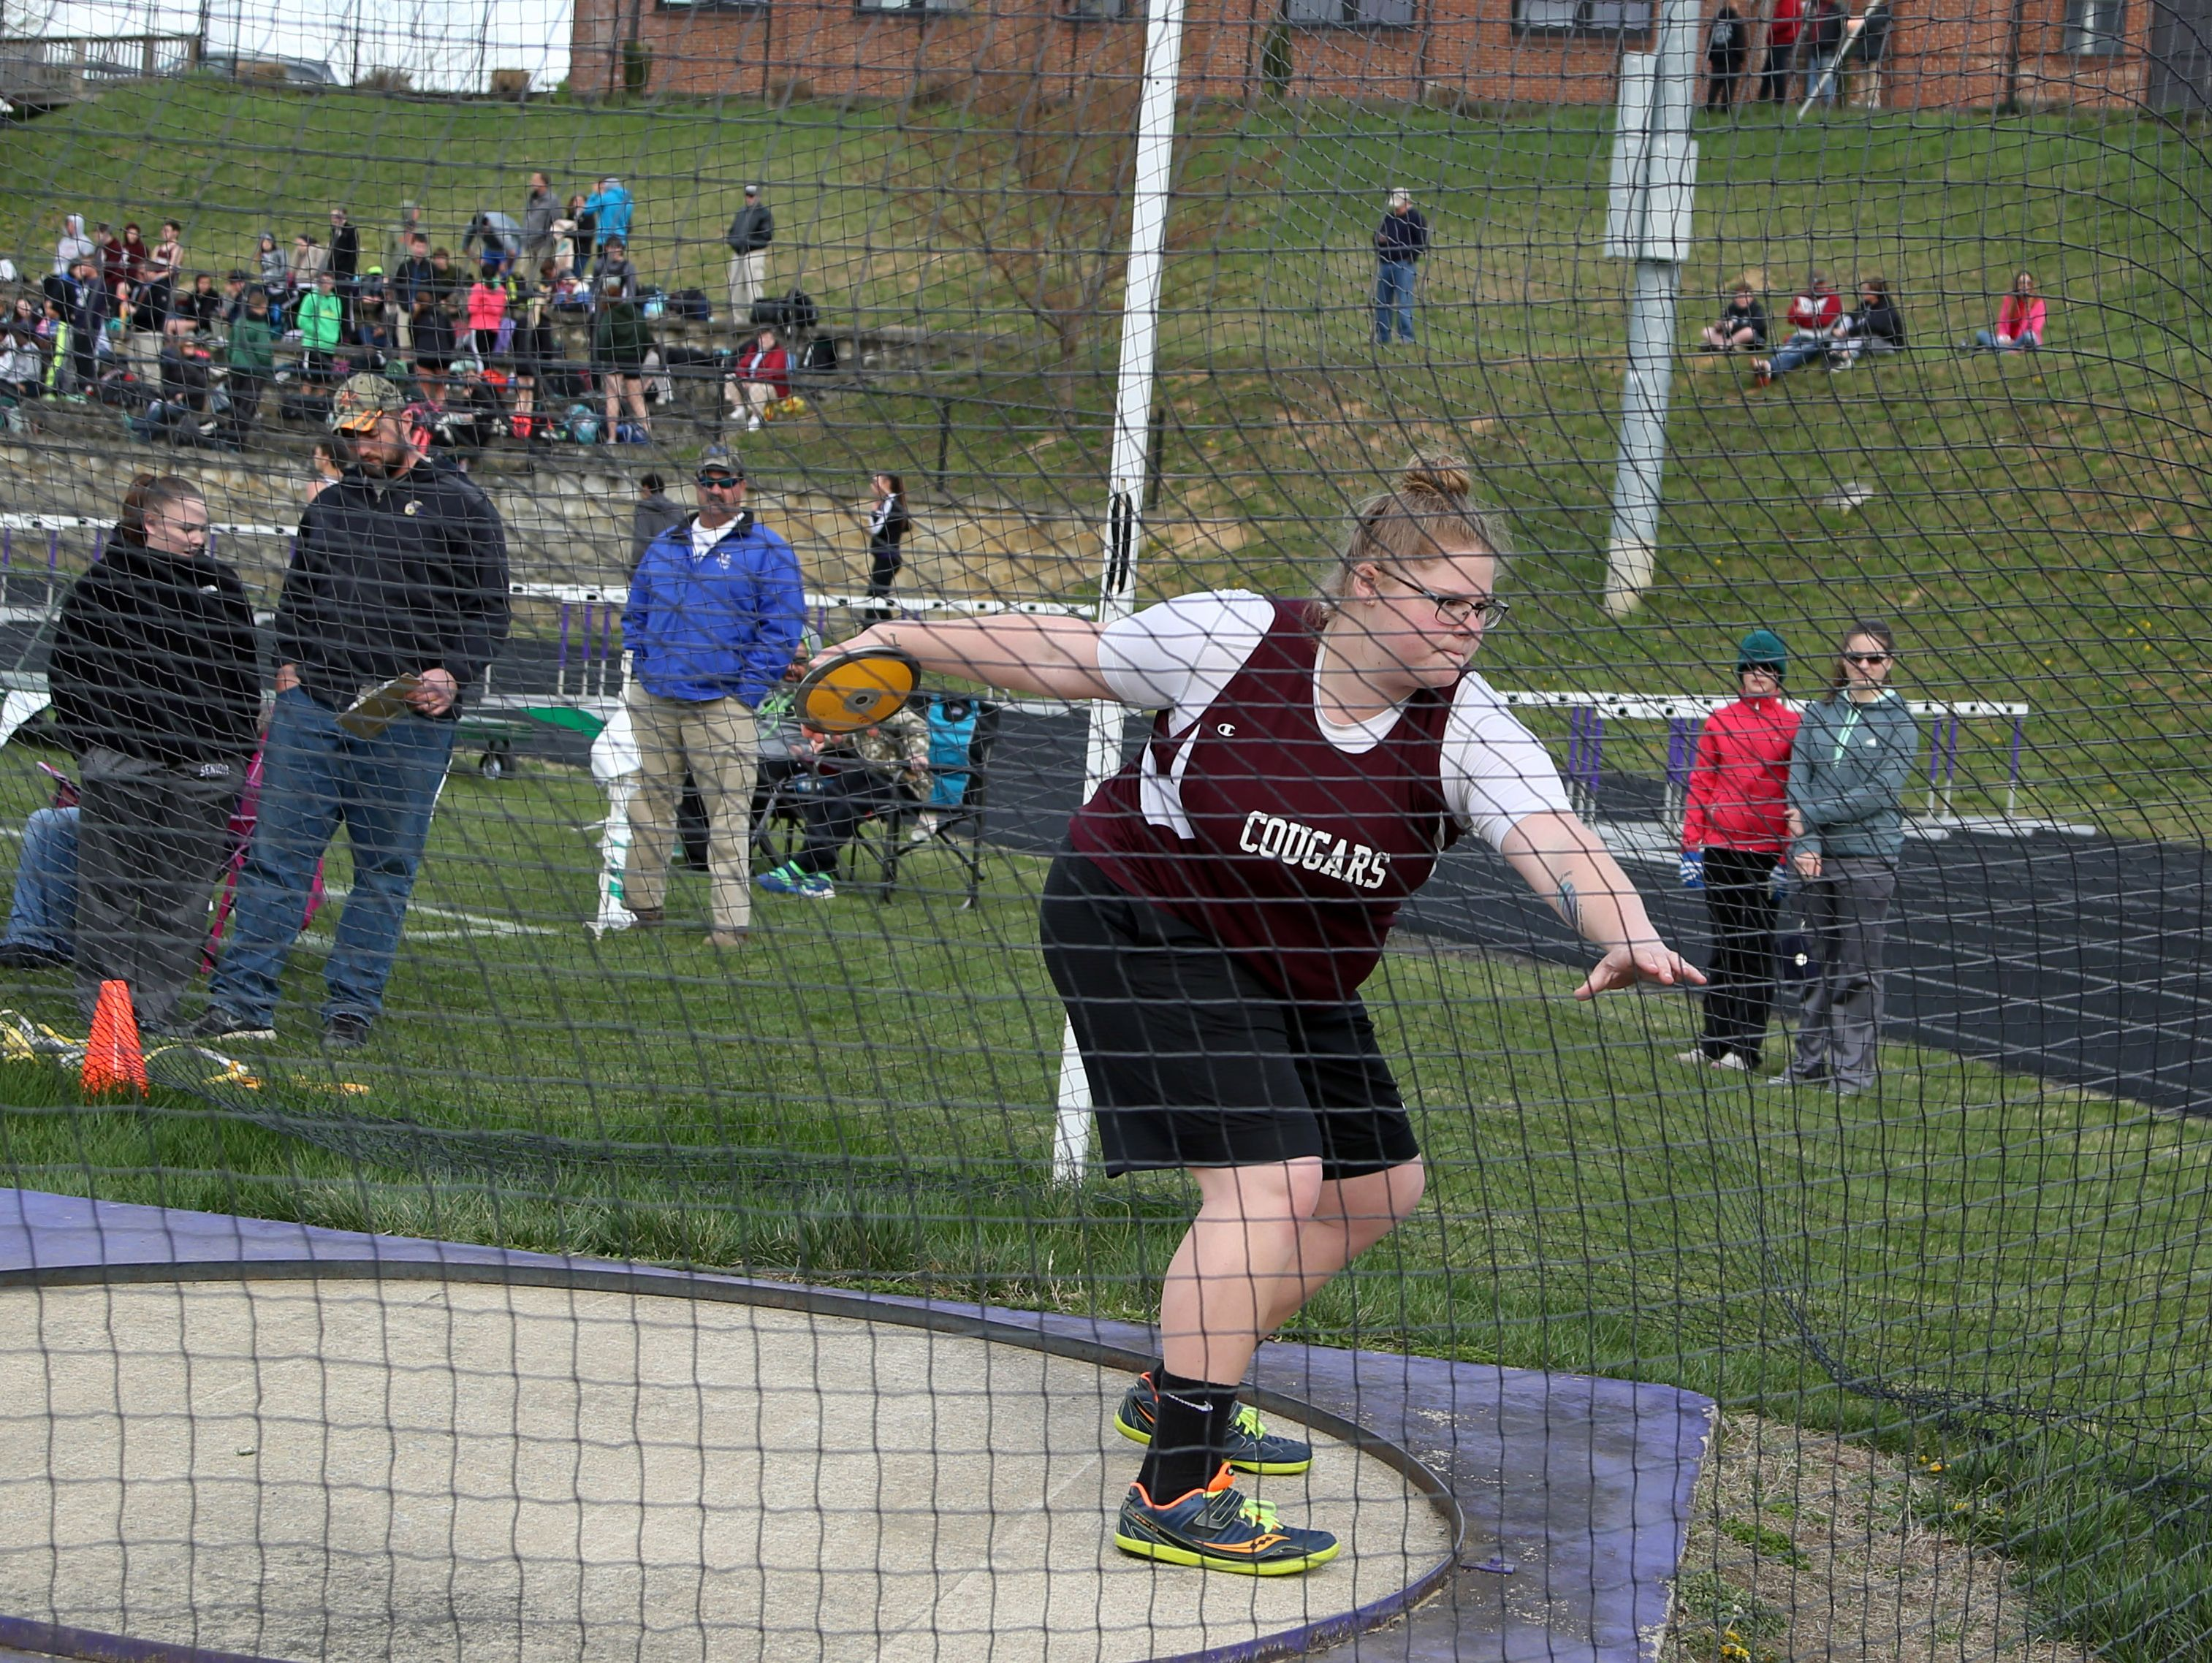 Paetyn Beverly of Stuarts Draft throws a discus during a Valley District mini-meet Wednesday at Waynesboro High School. Beverly won both the discus and shot put.